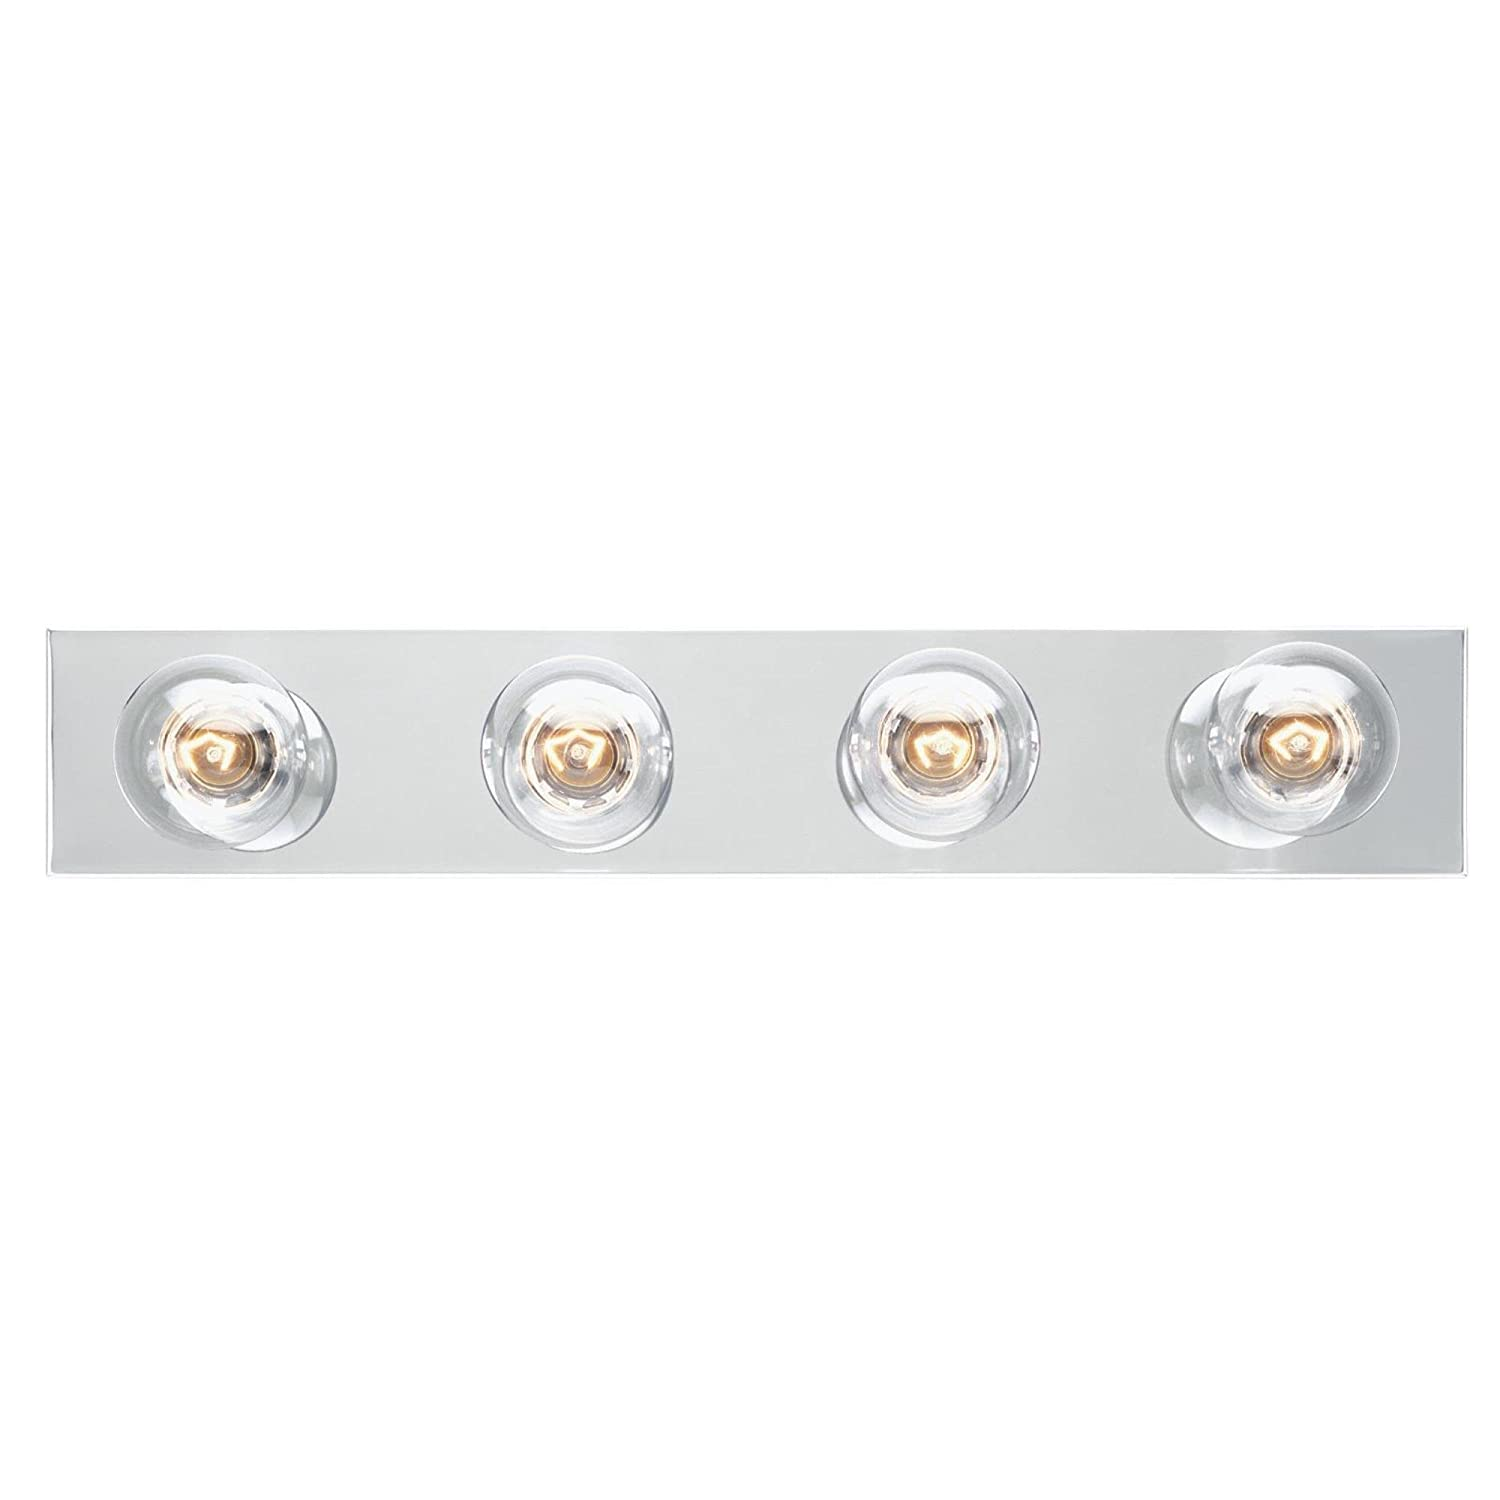 Westinghouse Lighting 6641100 Four-Light Bath Bar